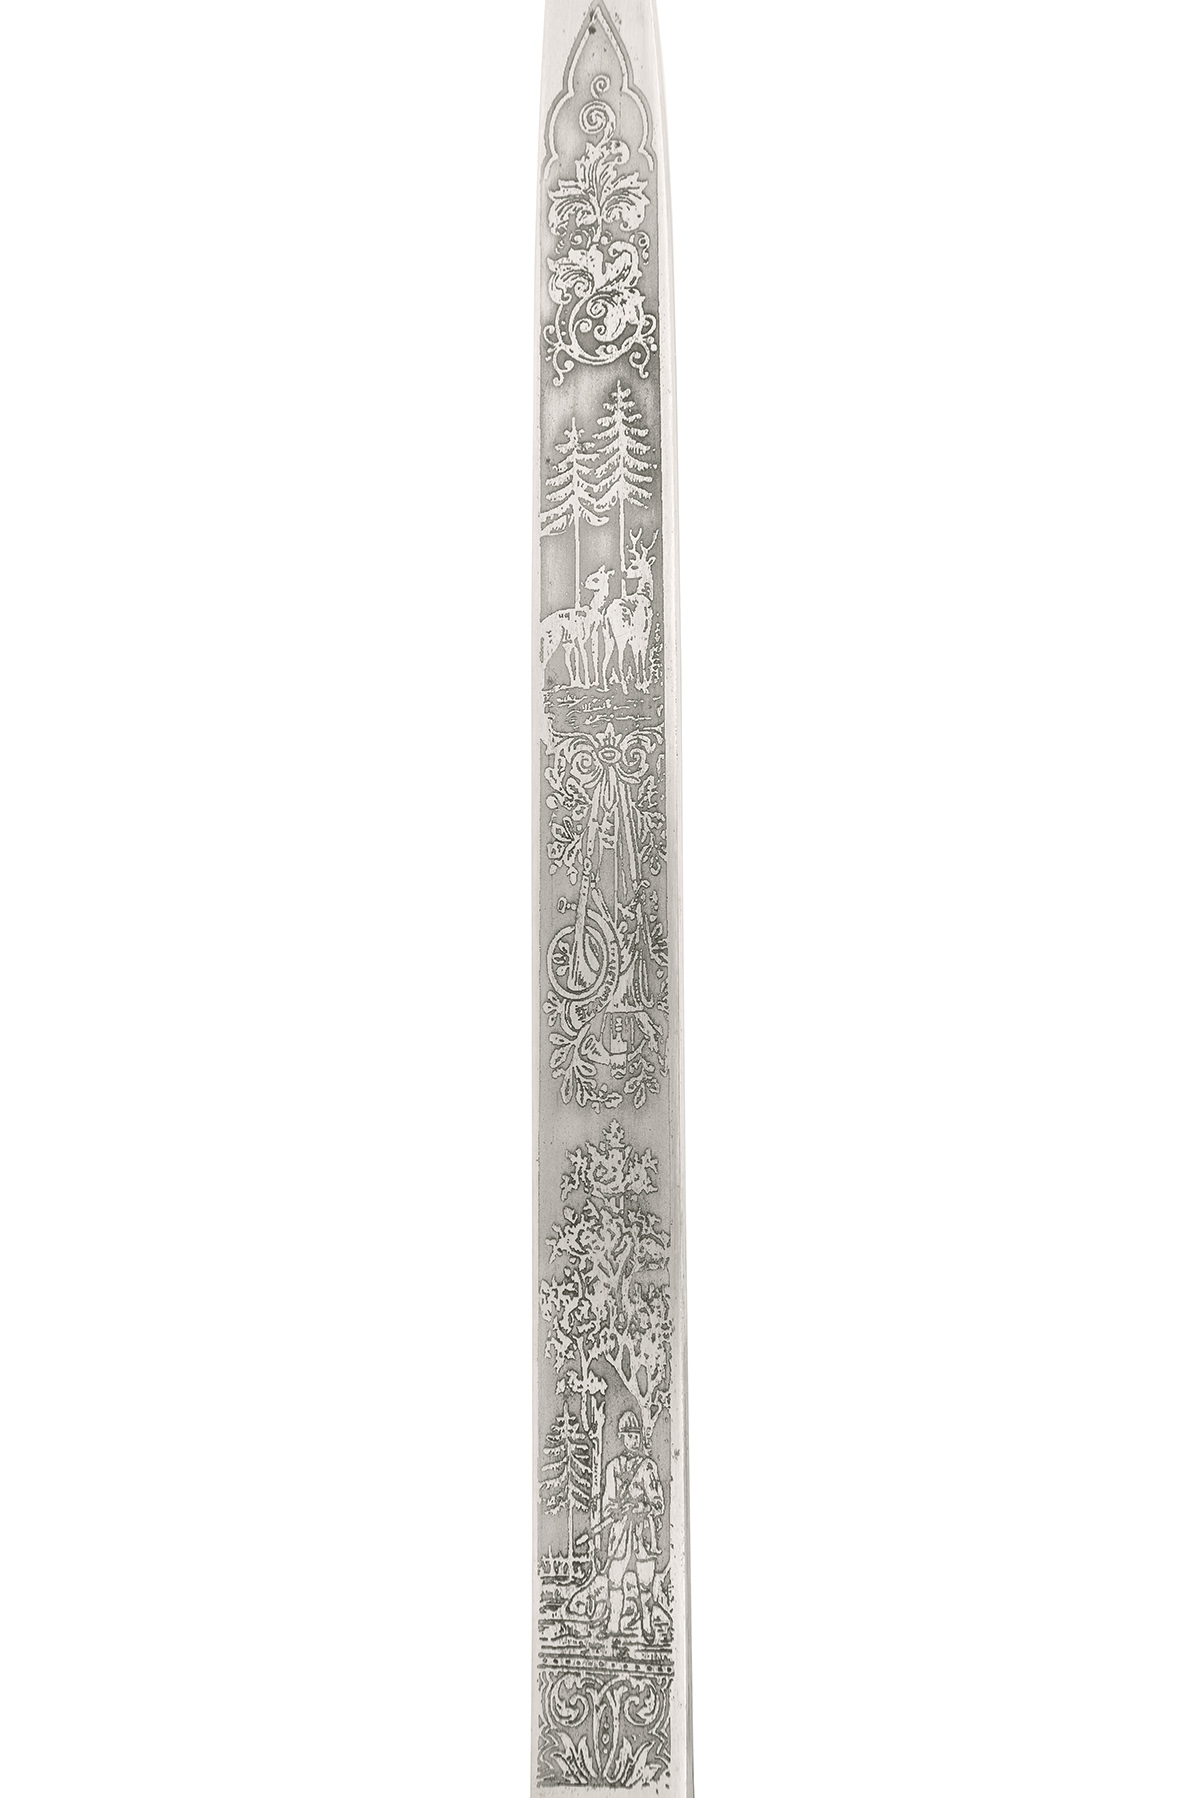 Lot 210 - CARL EICKHORN, SOLINGEN A GERMAN HUNTING ASSOCIATION HANGER WITH ETCHED BLADE, possibly mid 1930s,